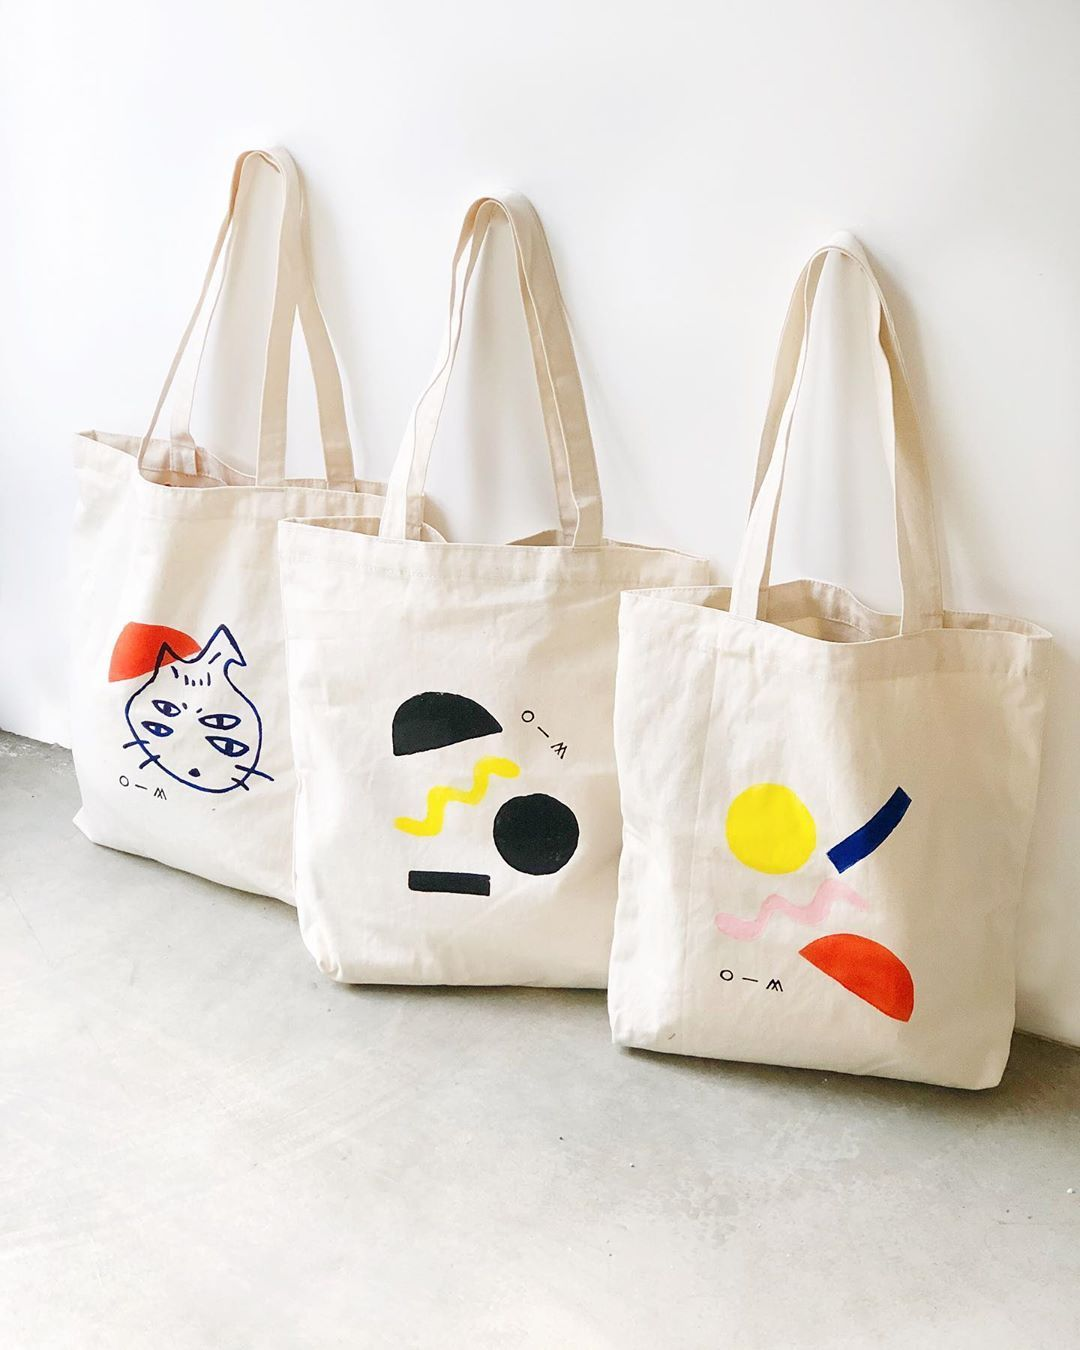 Download O M Object Matter Ceramic On Instagram Another Fun Project Block Printing And Hand Painting Tot Tote Bag Canvas Design Fabric Tote Bags Canvas Bag Design